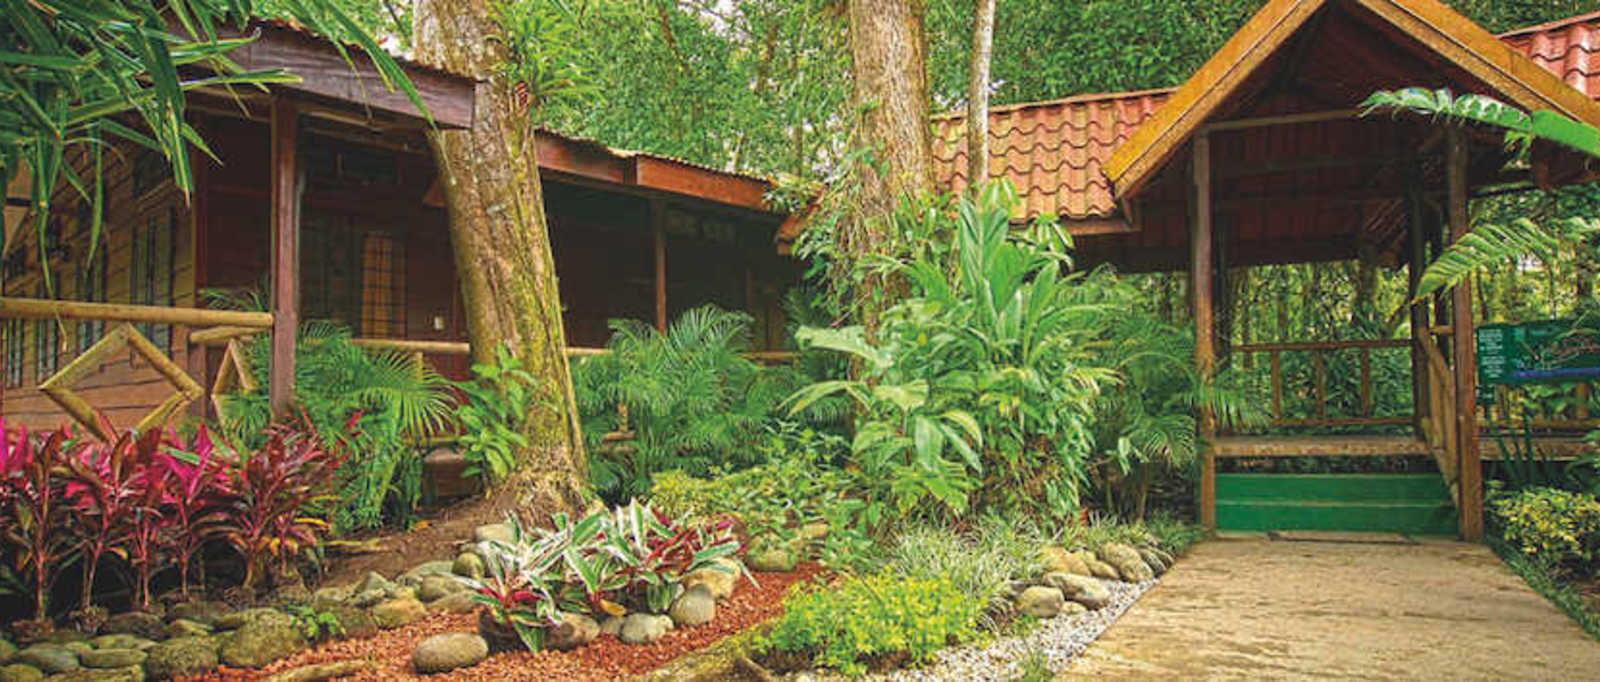 Pachira Lodge Costa Rica